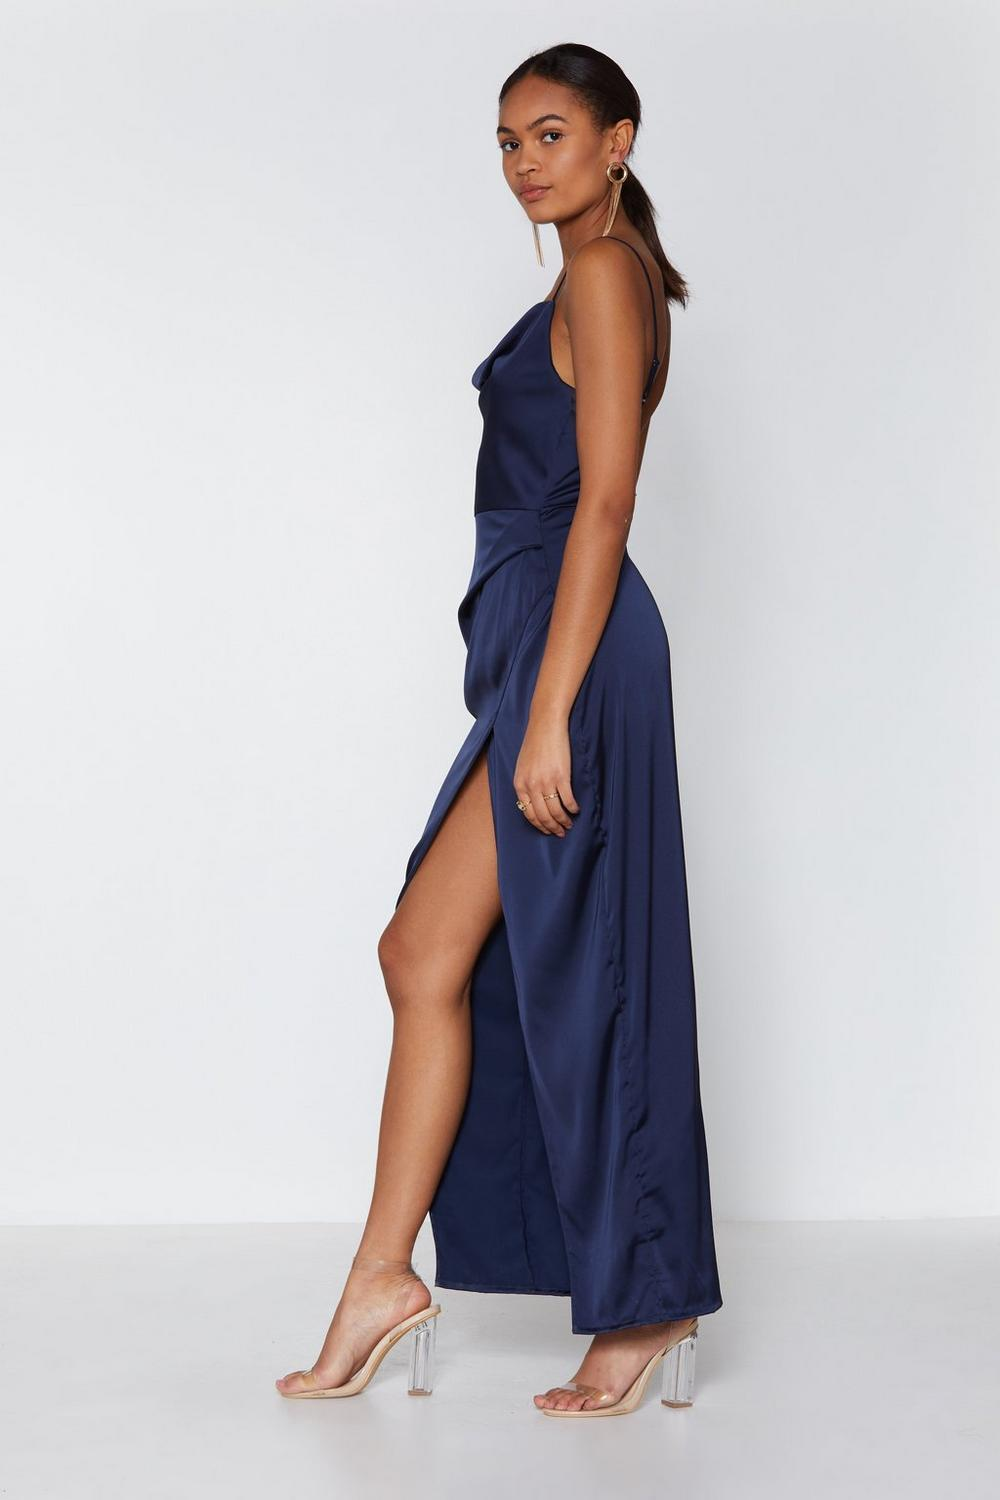 39496934dbe Womens Navy Cowl Play Satin Dress. Hover to zoom